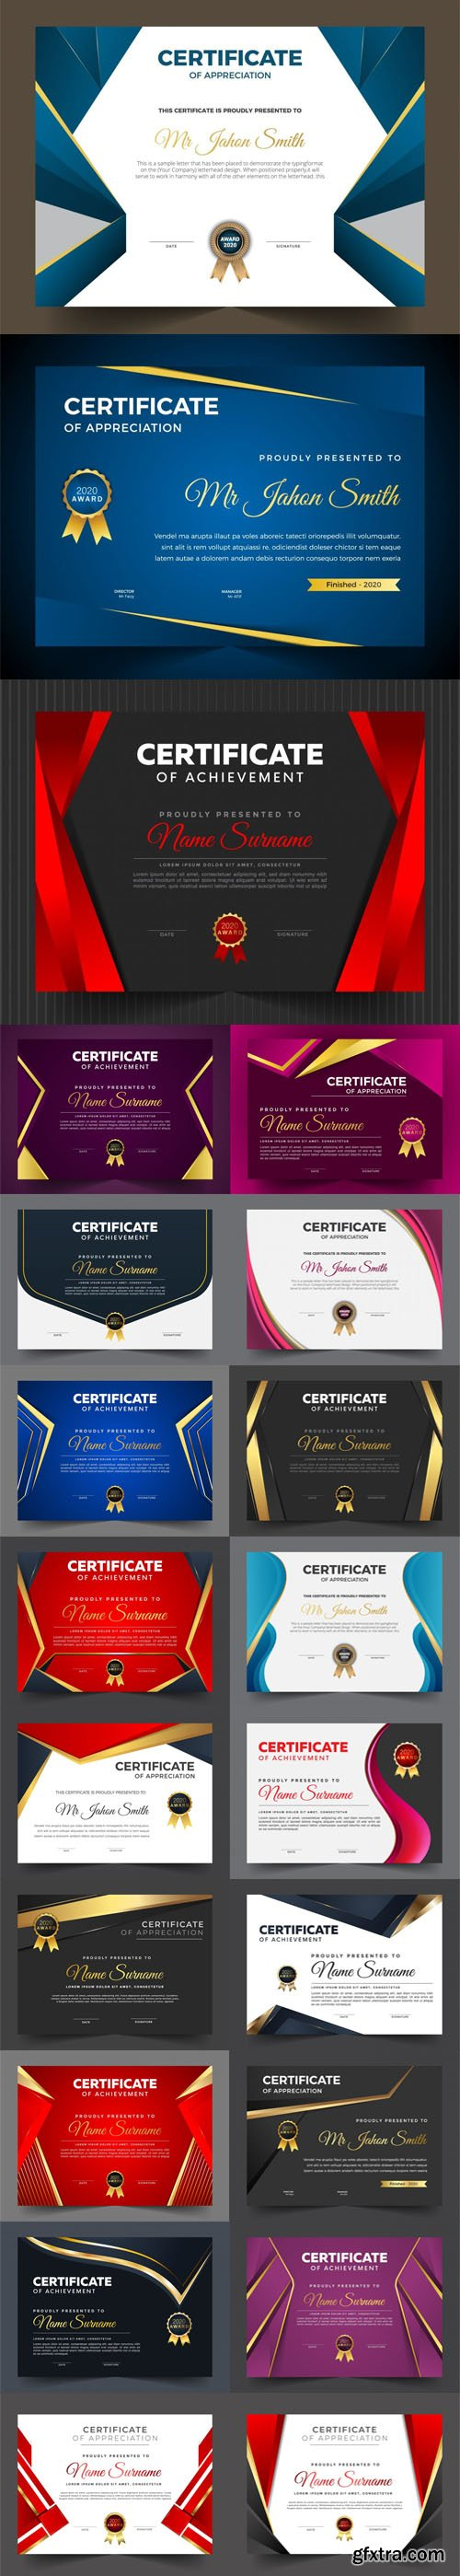 21 Multipurpose Certificate Design Vector Templates Collection